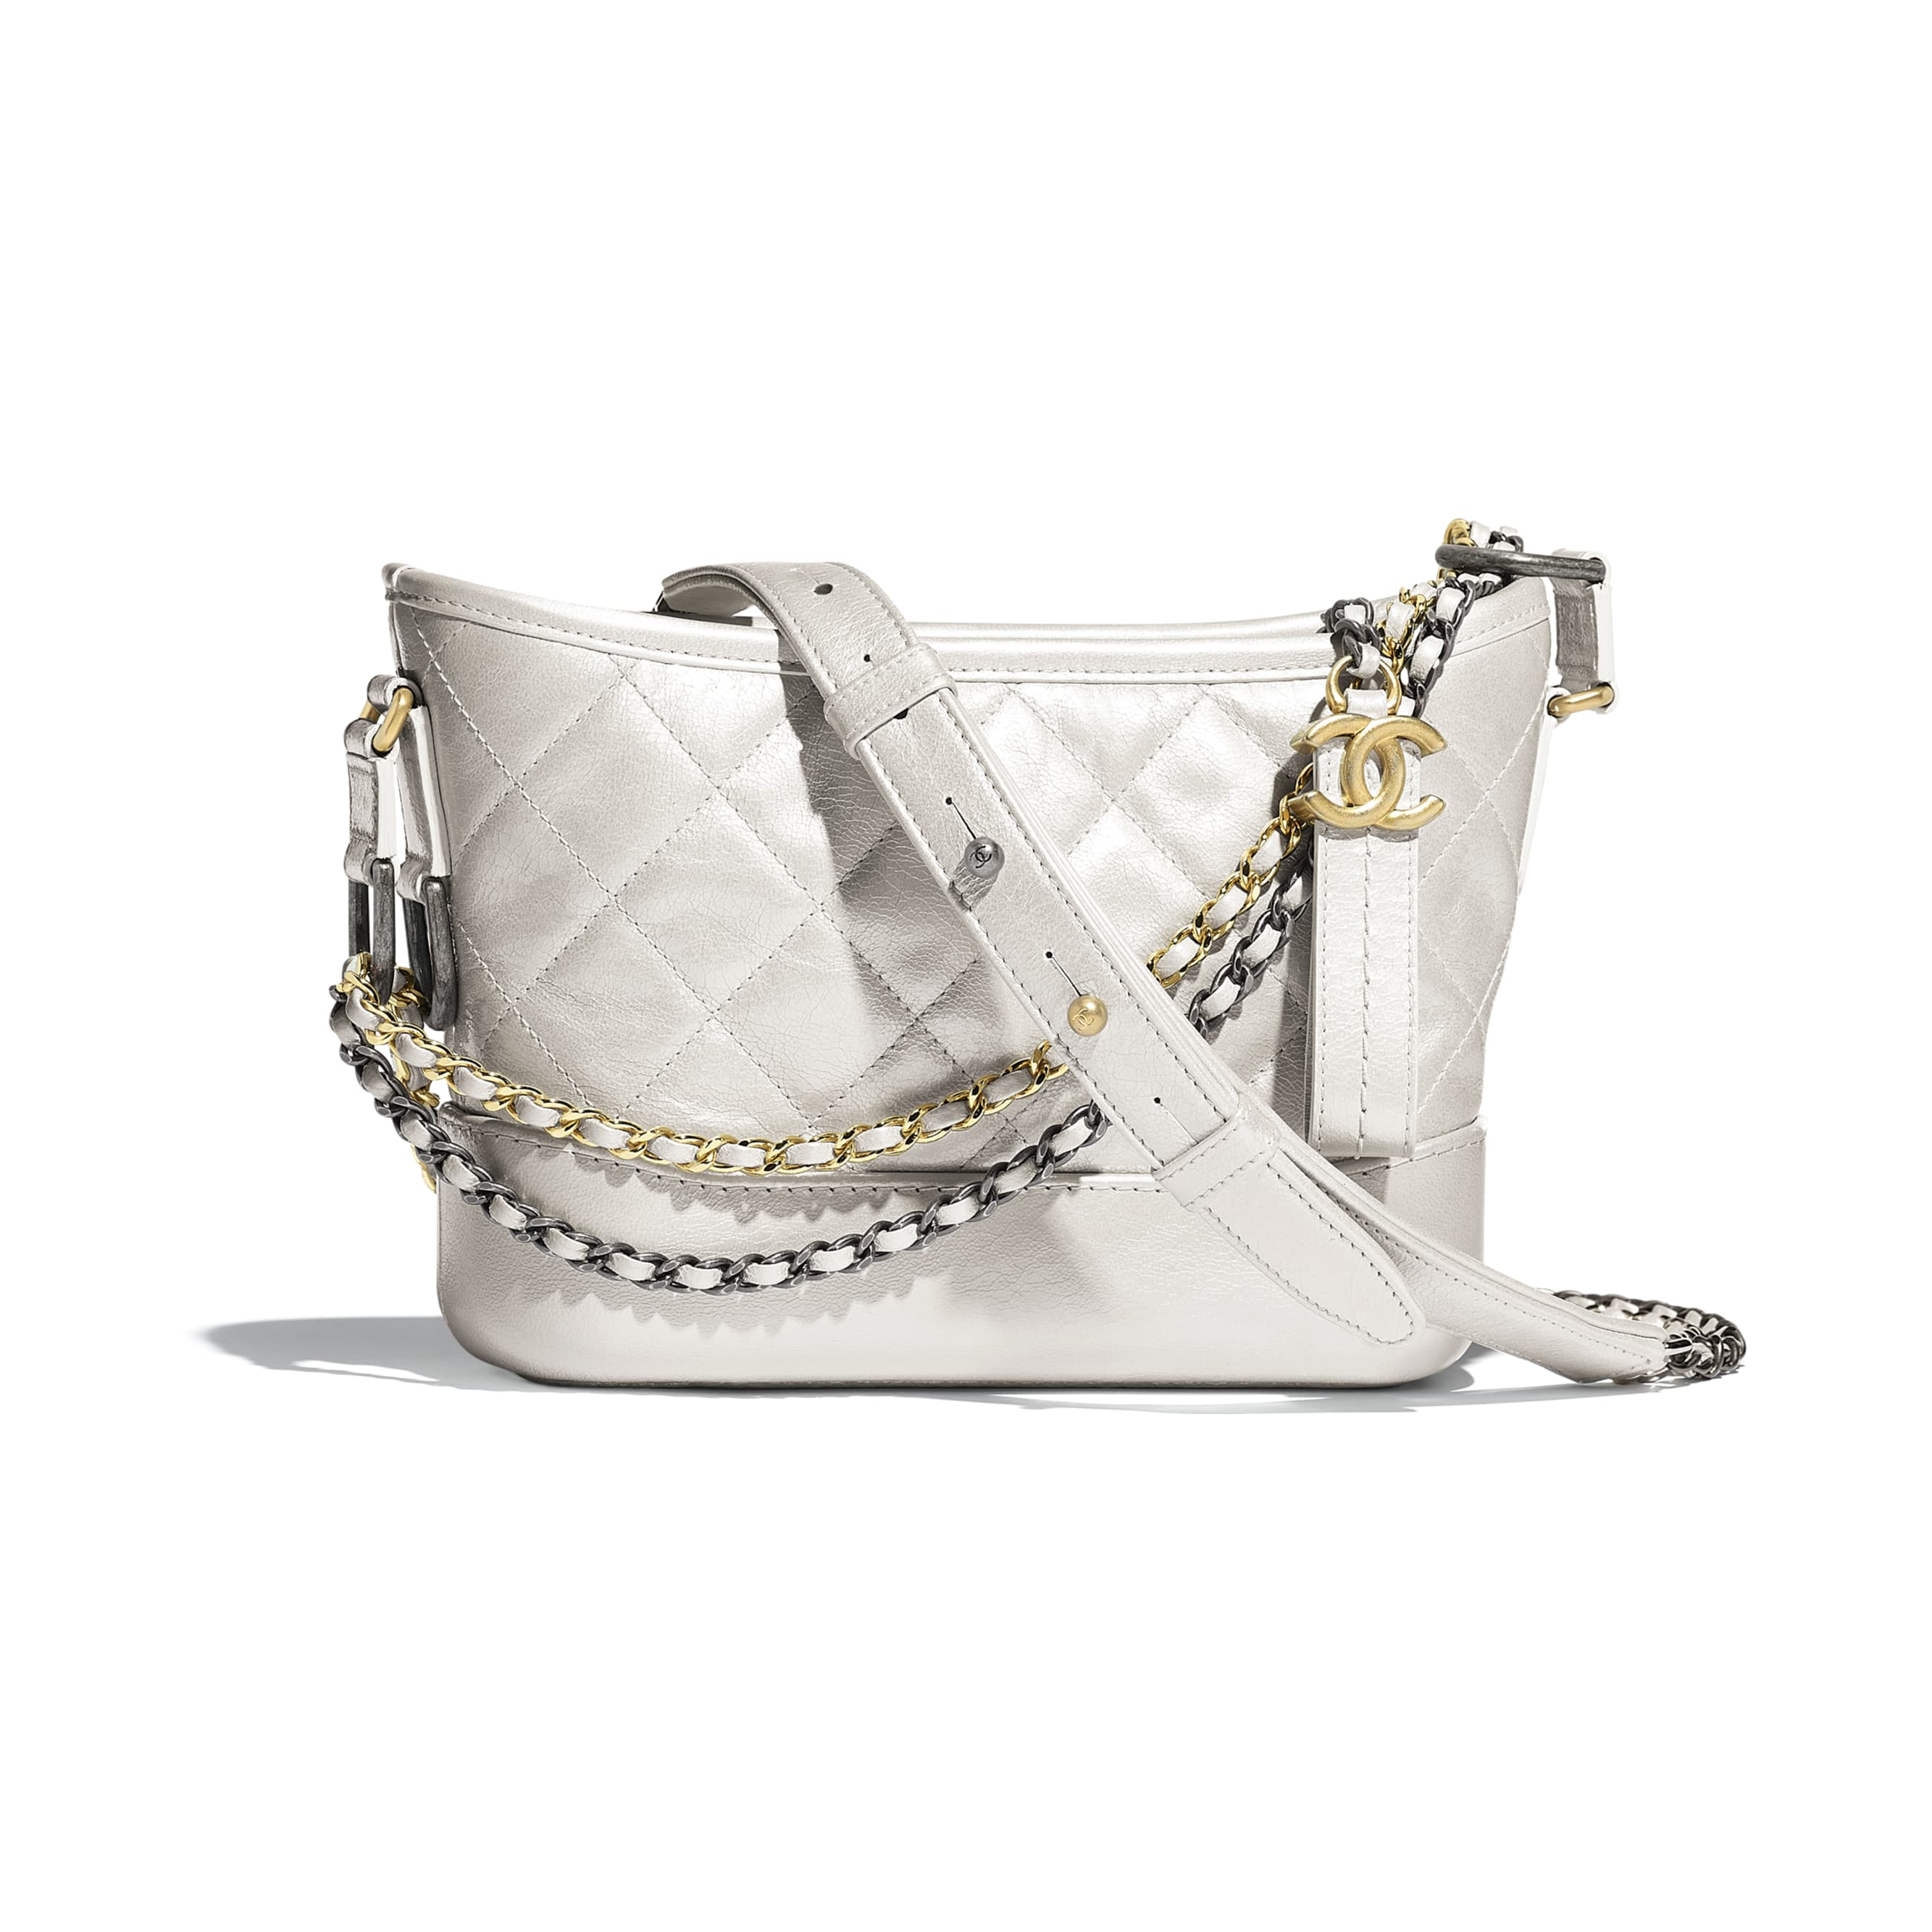 CHANEL'S GABRIELLE Small Hobo Bag - Silver - Metallic Crumpled Lambskin, Calfskin, Gold-Tone & Silver-Tone Metal - CHANEL - Default view - see standard sized version